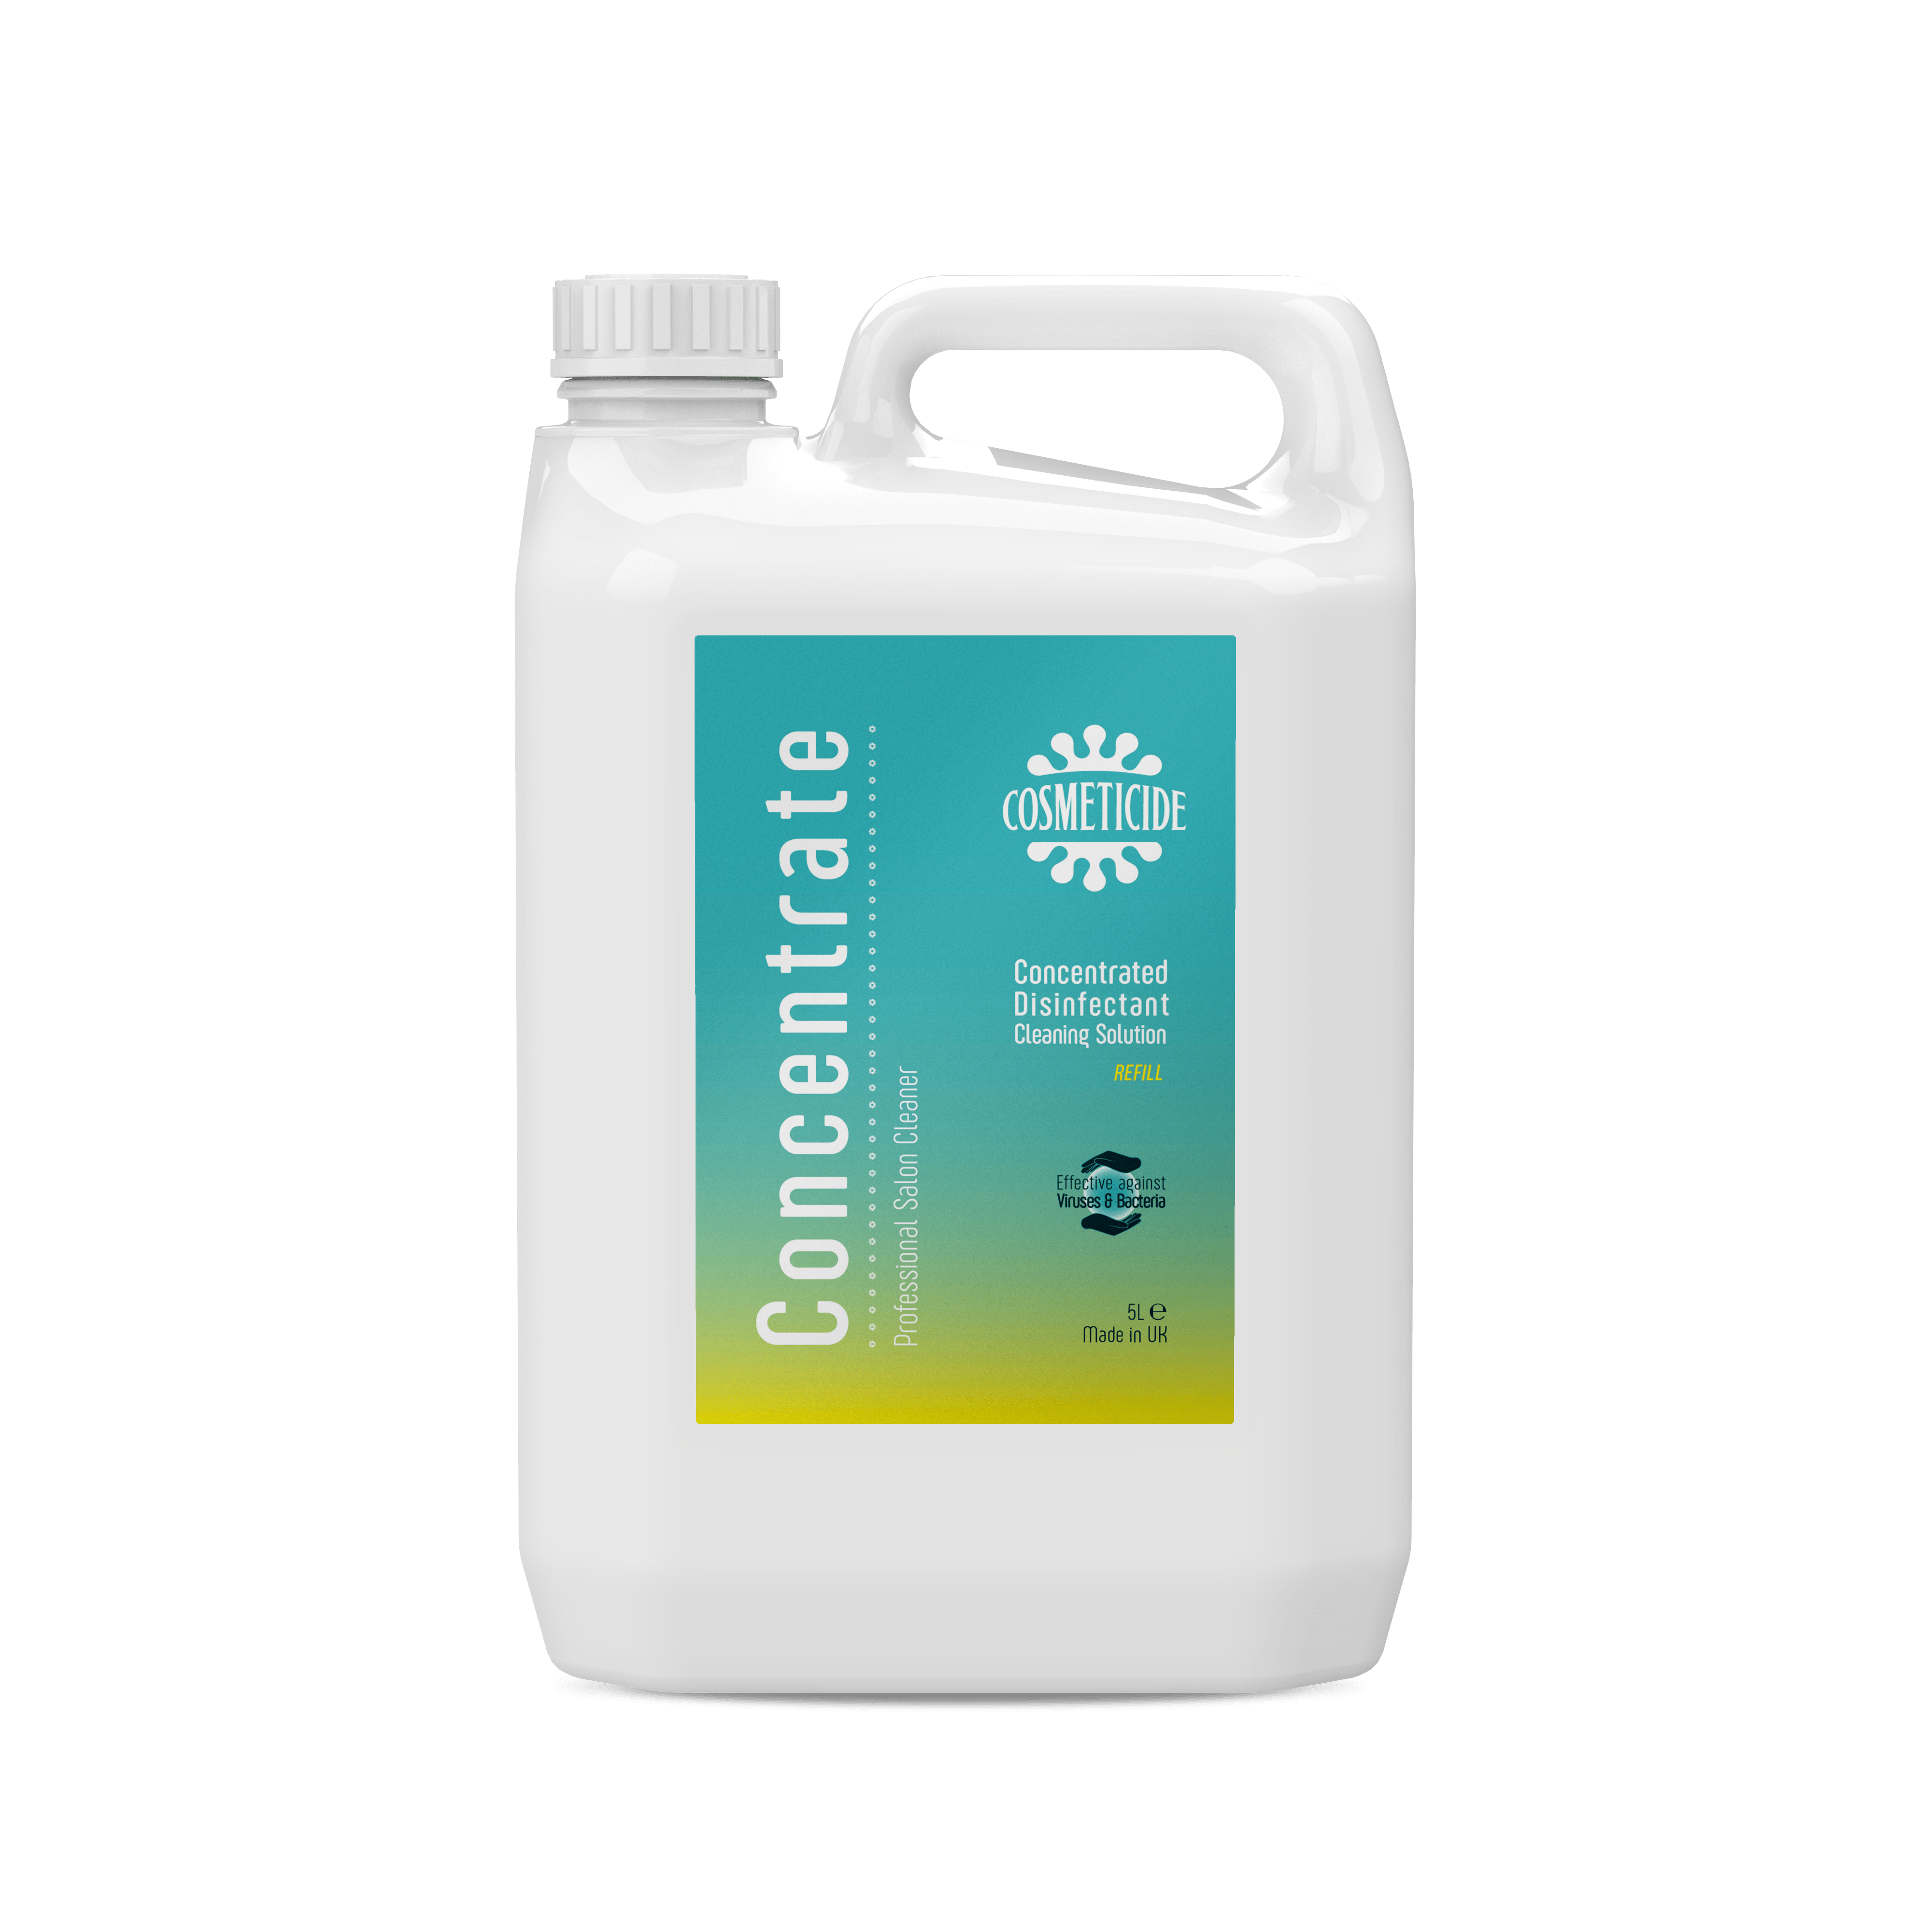 Halo Cosmeticide Concentrate 5 Liter